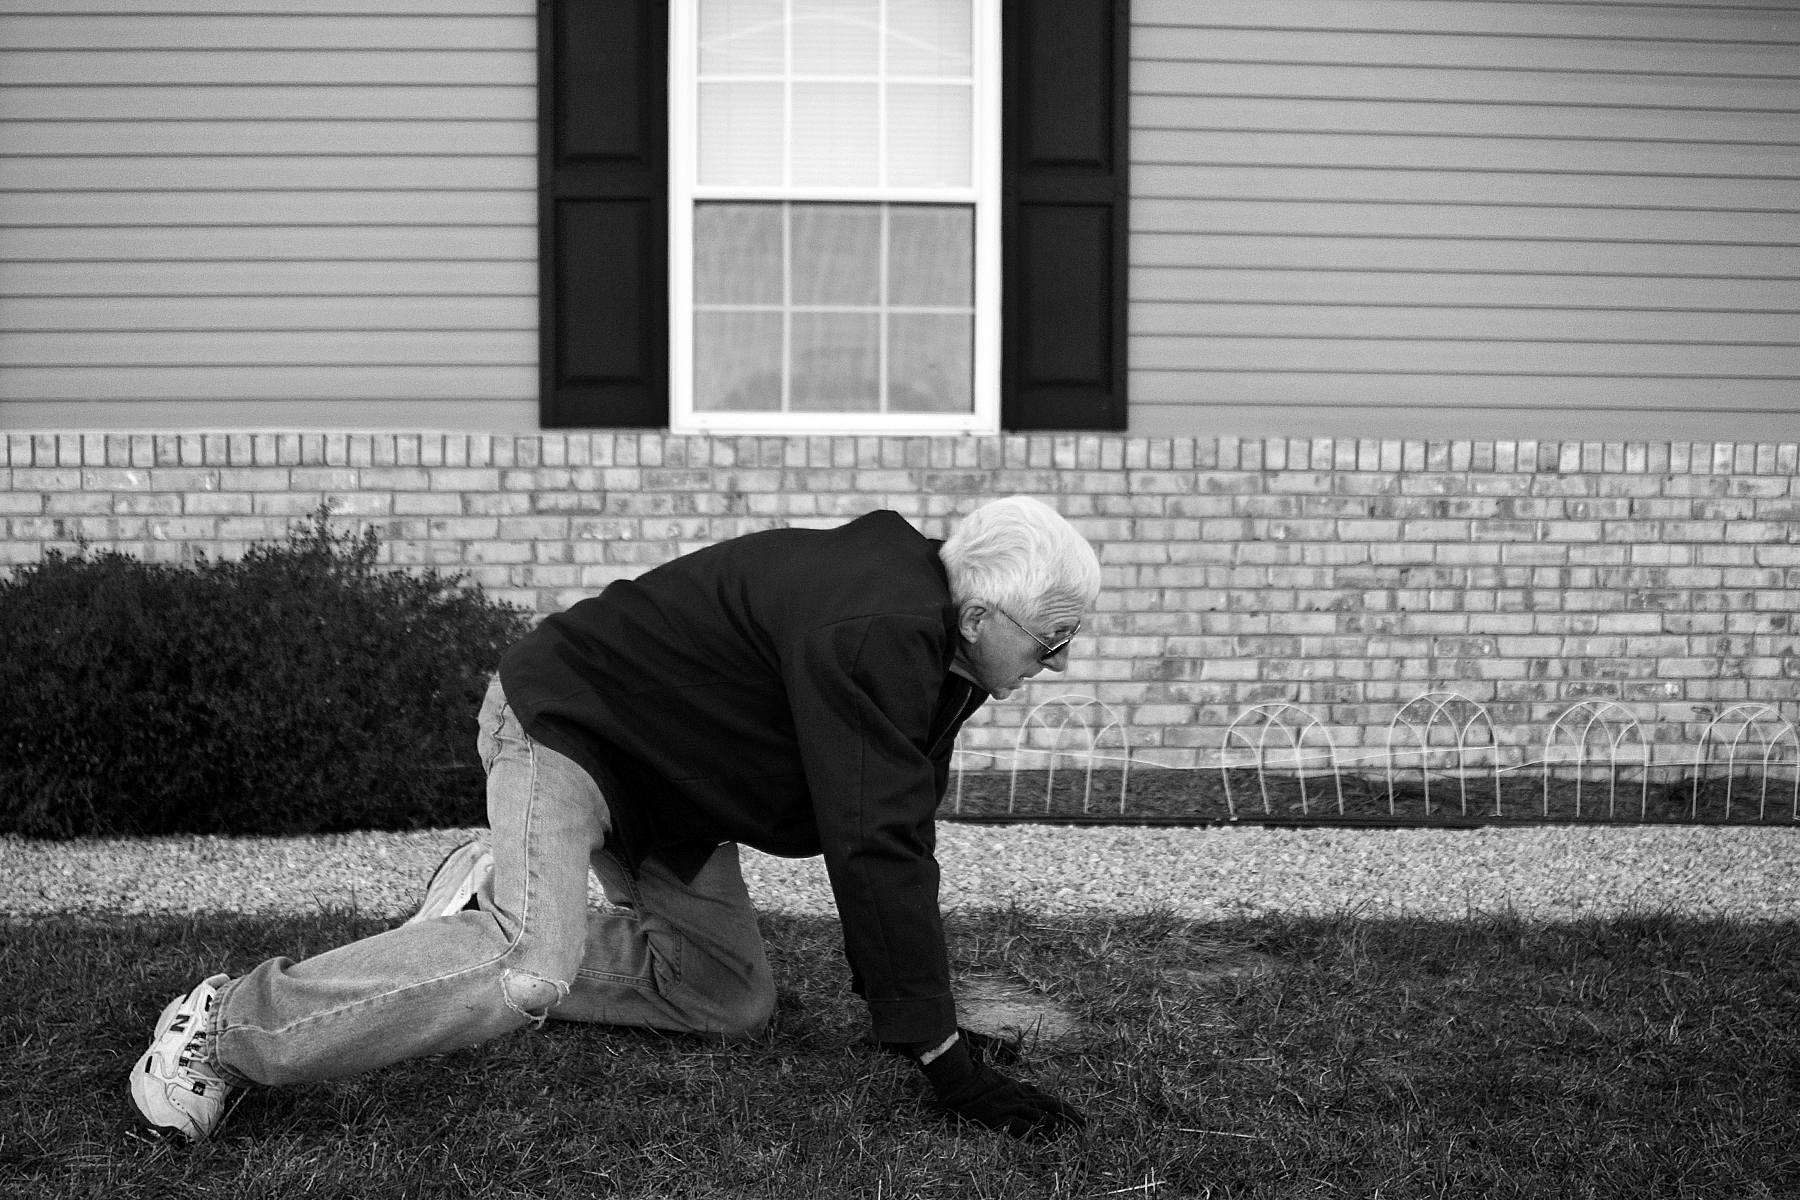 Red learned how to fall in a way that would lessen the blow and chances of injury if he fell when struggling with his walking. He tried to get back to his feet after falling in his front yard while putting up Christmas decorations.